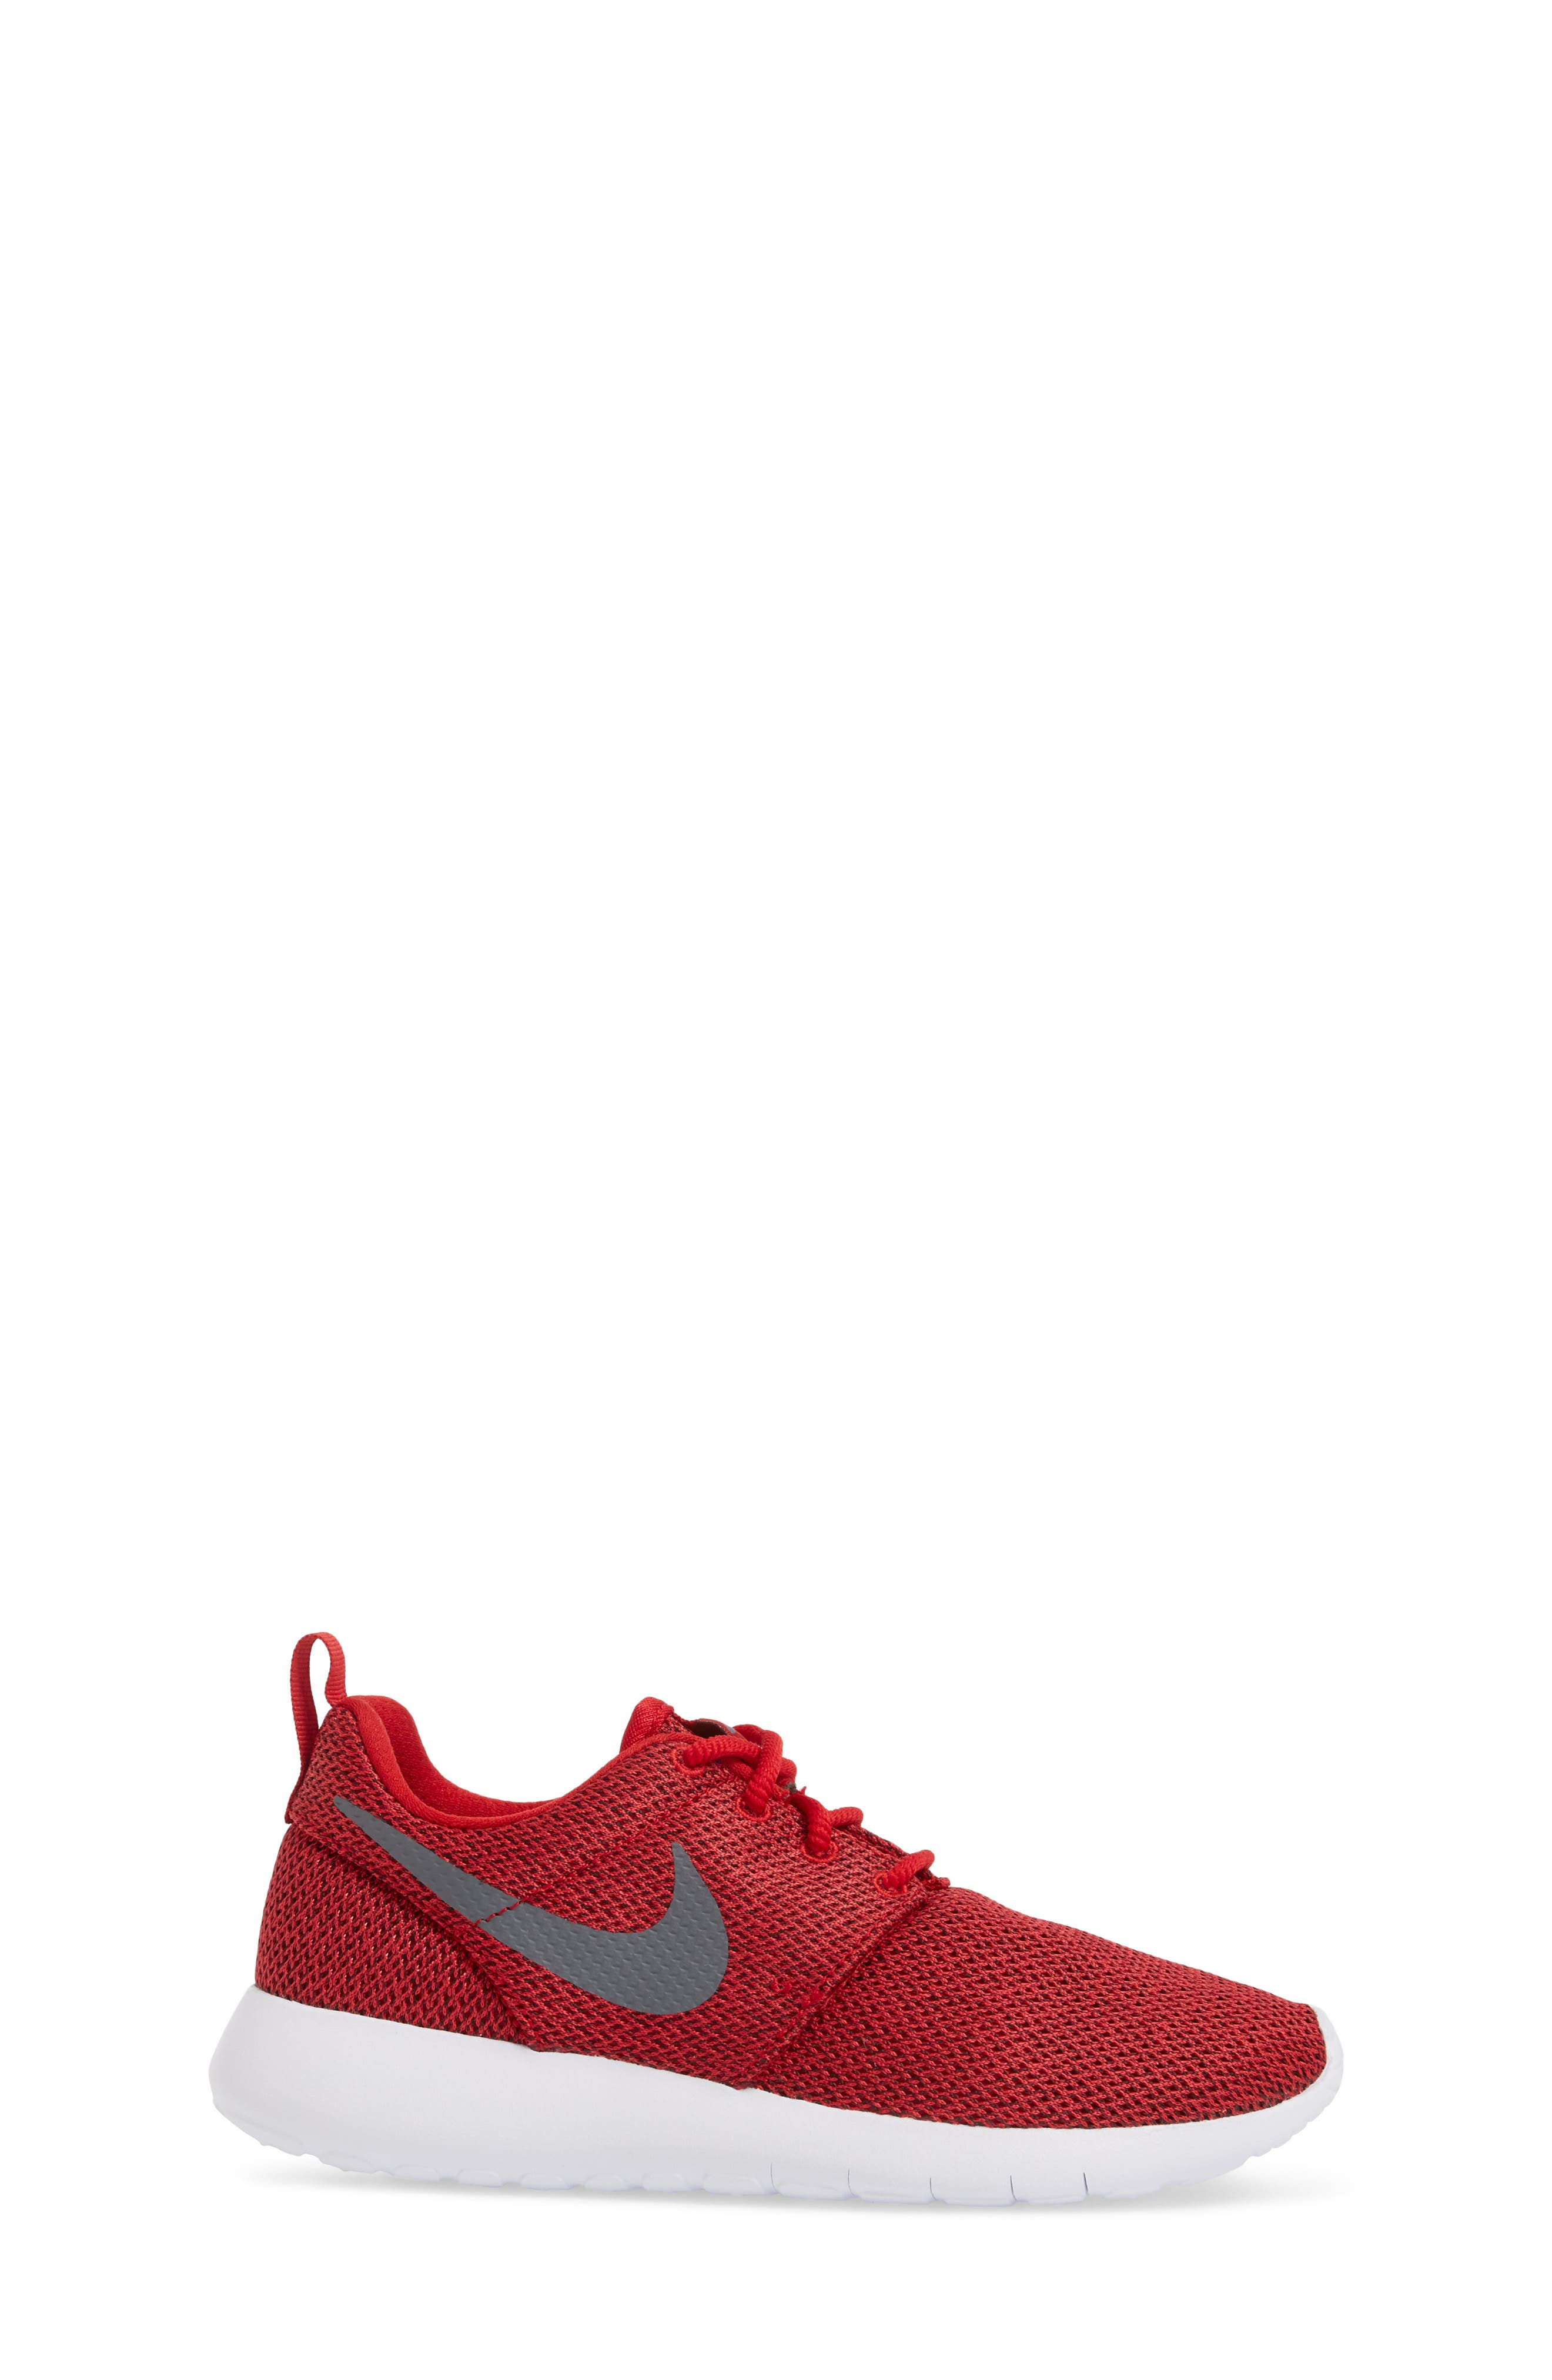 'Roshe Run' Sneaker,                             Alternate thumbnail 107, color,